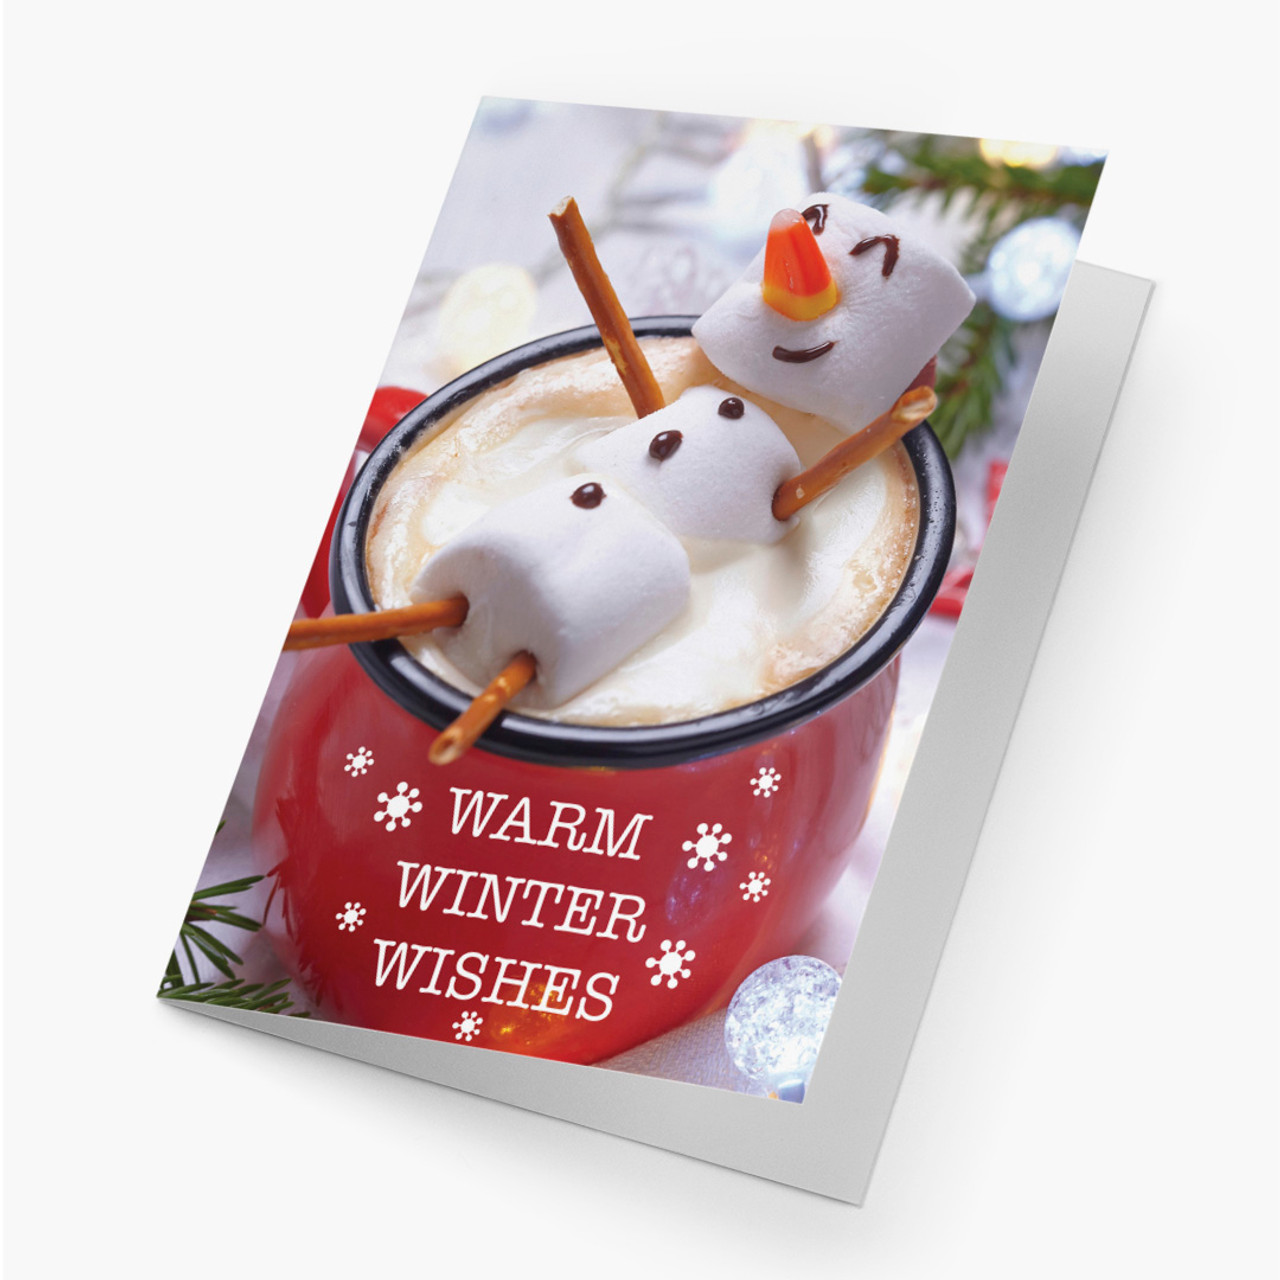 Warm Winter Wishes Christmas Card